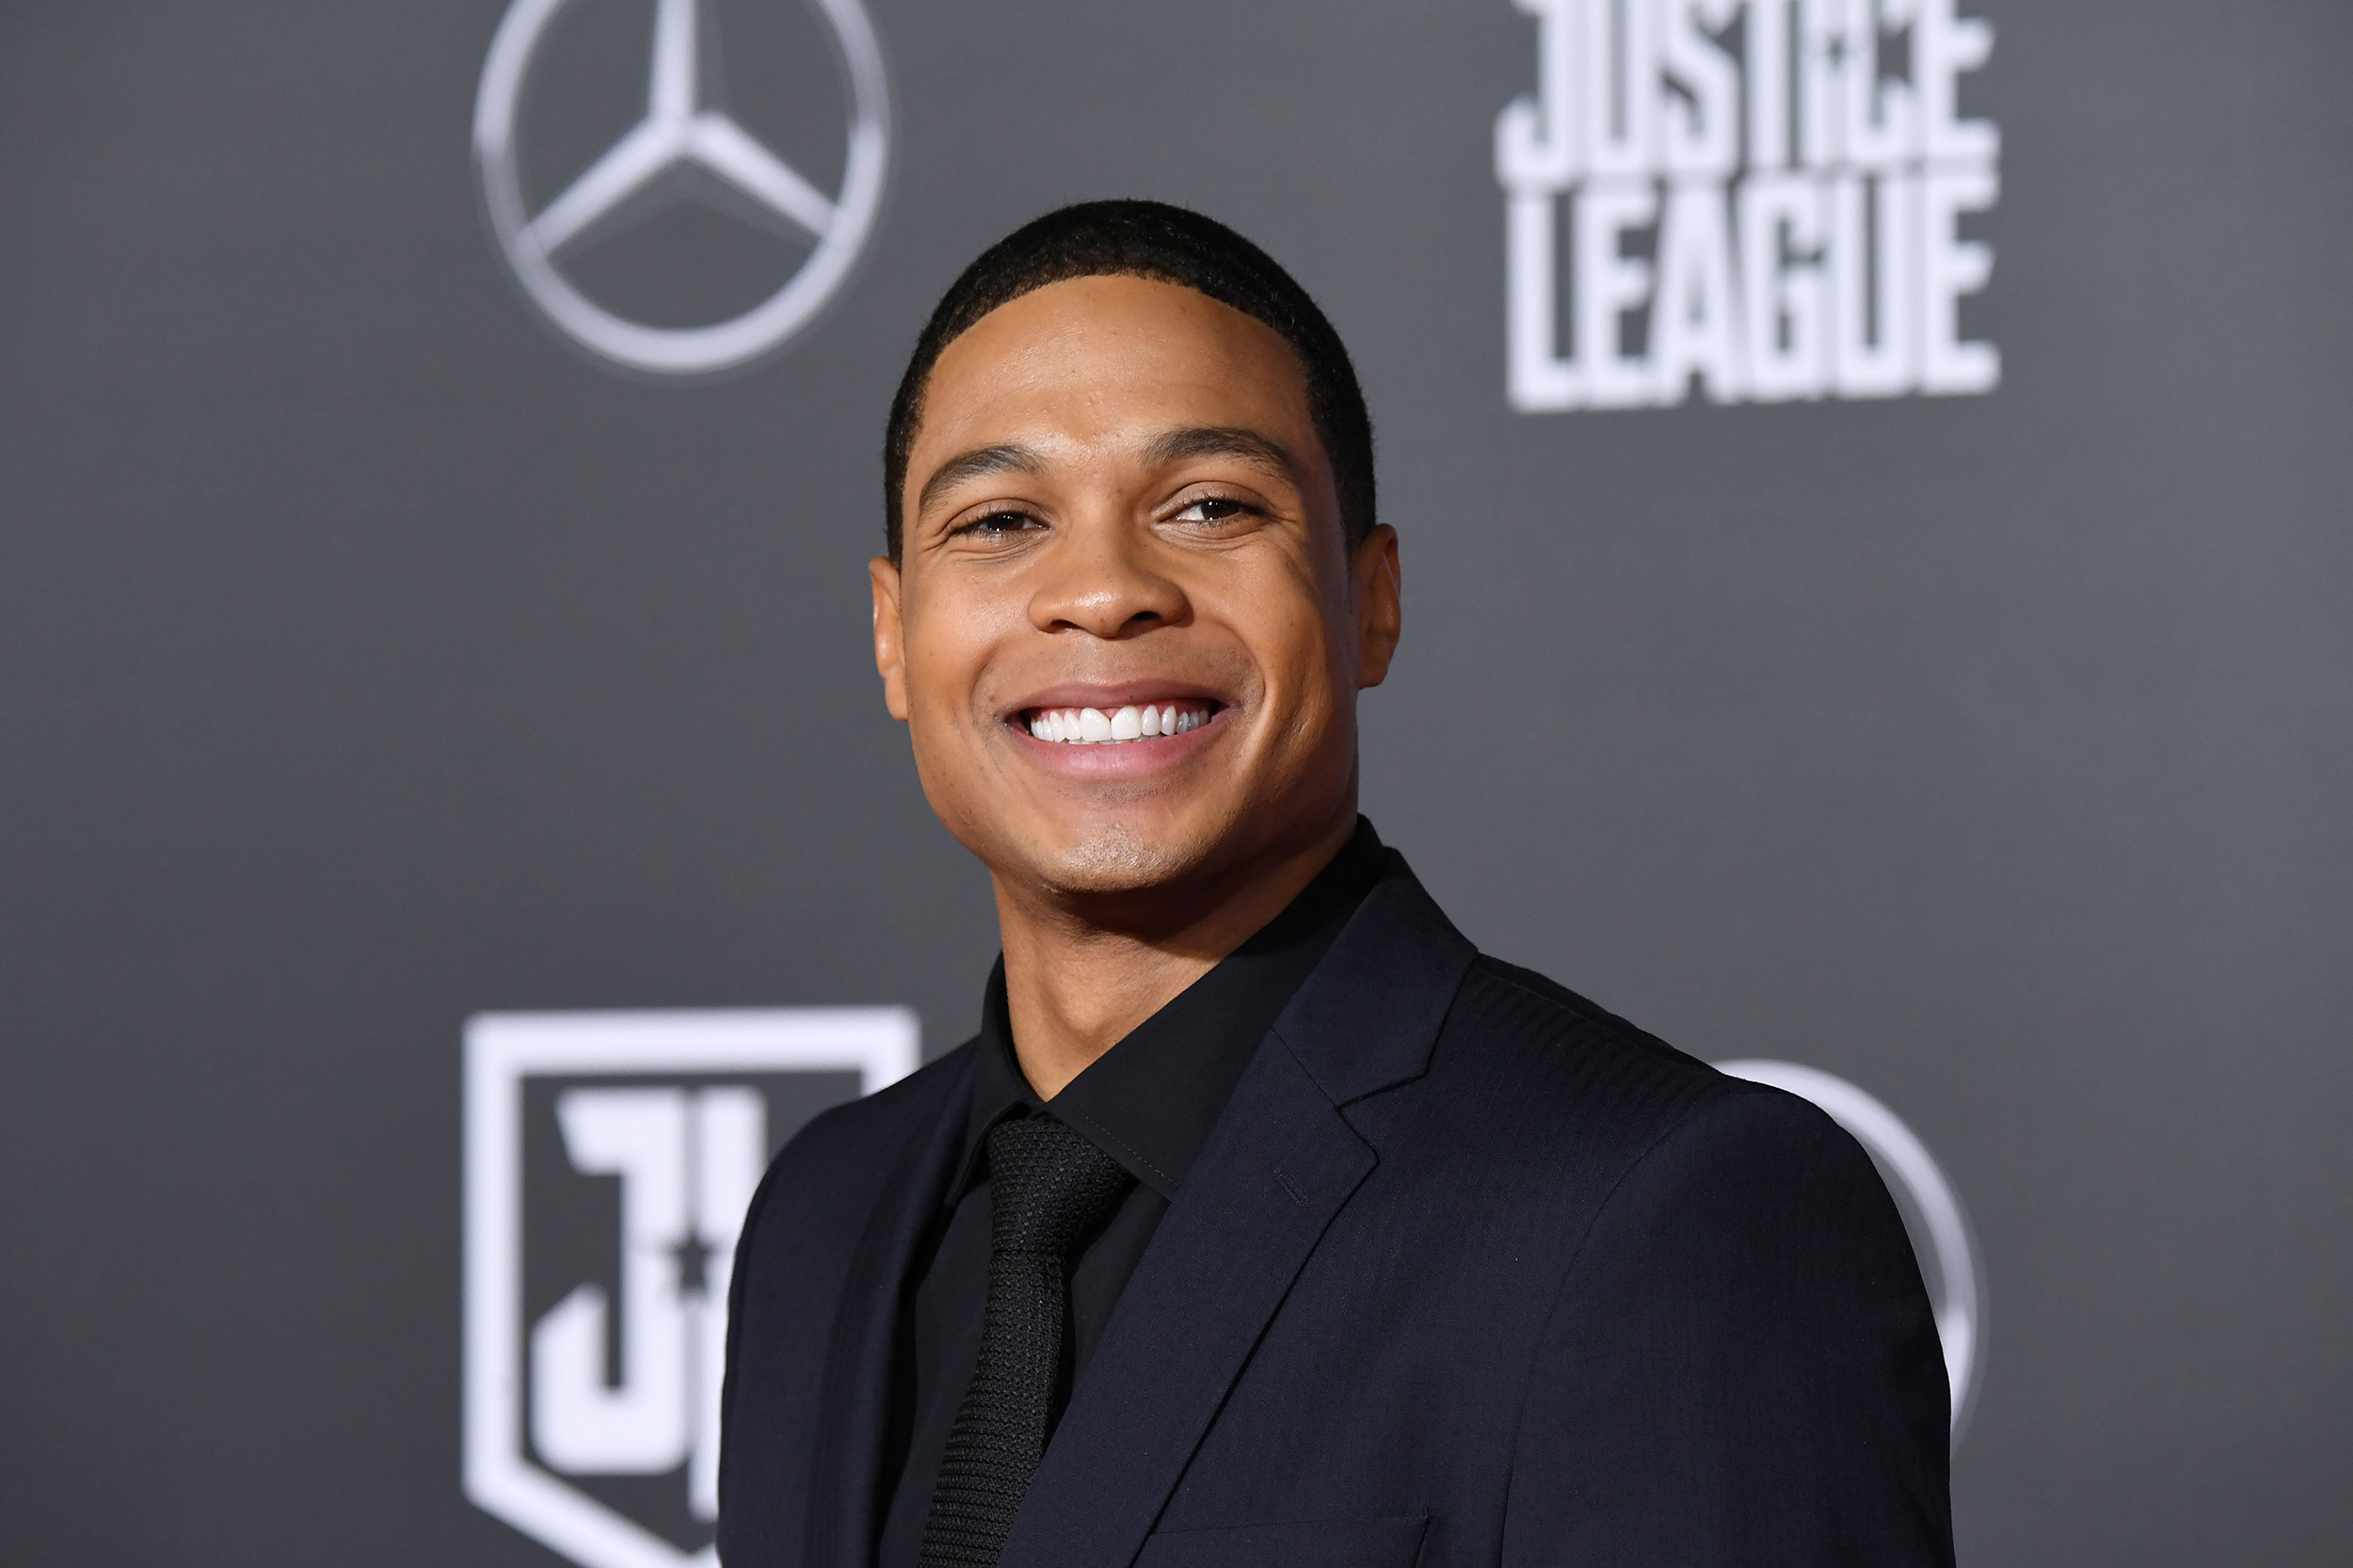 Image: Actor Ray Fisher